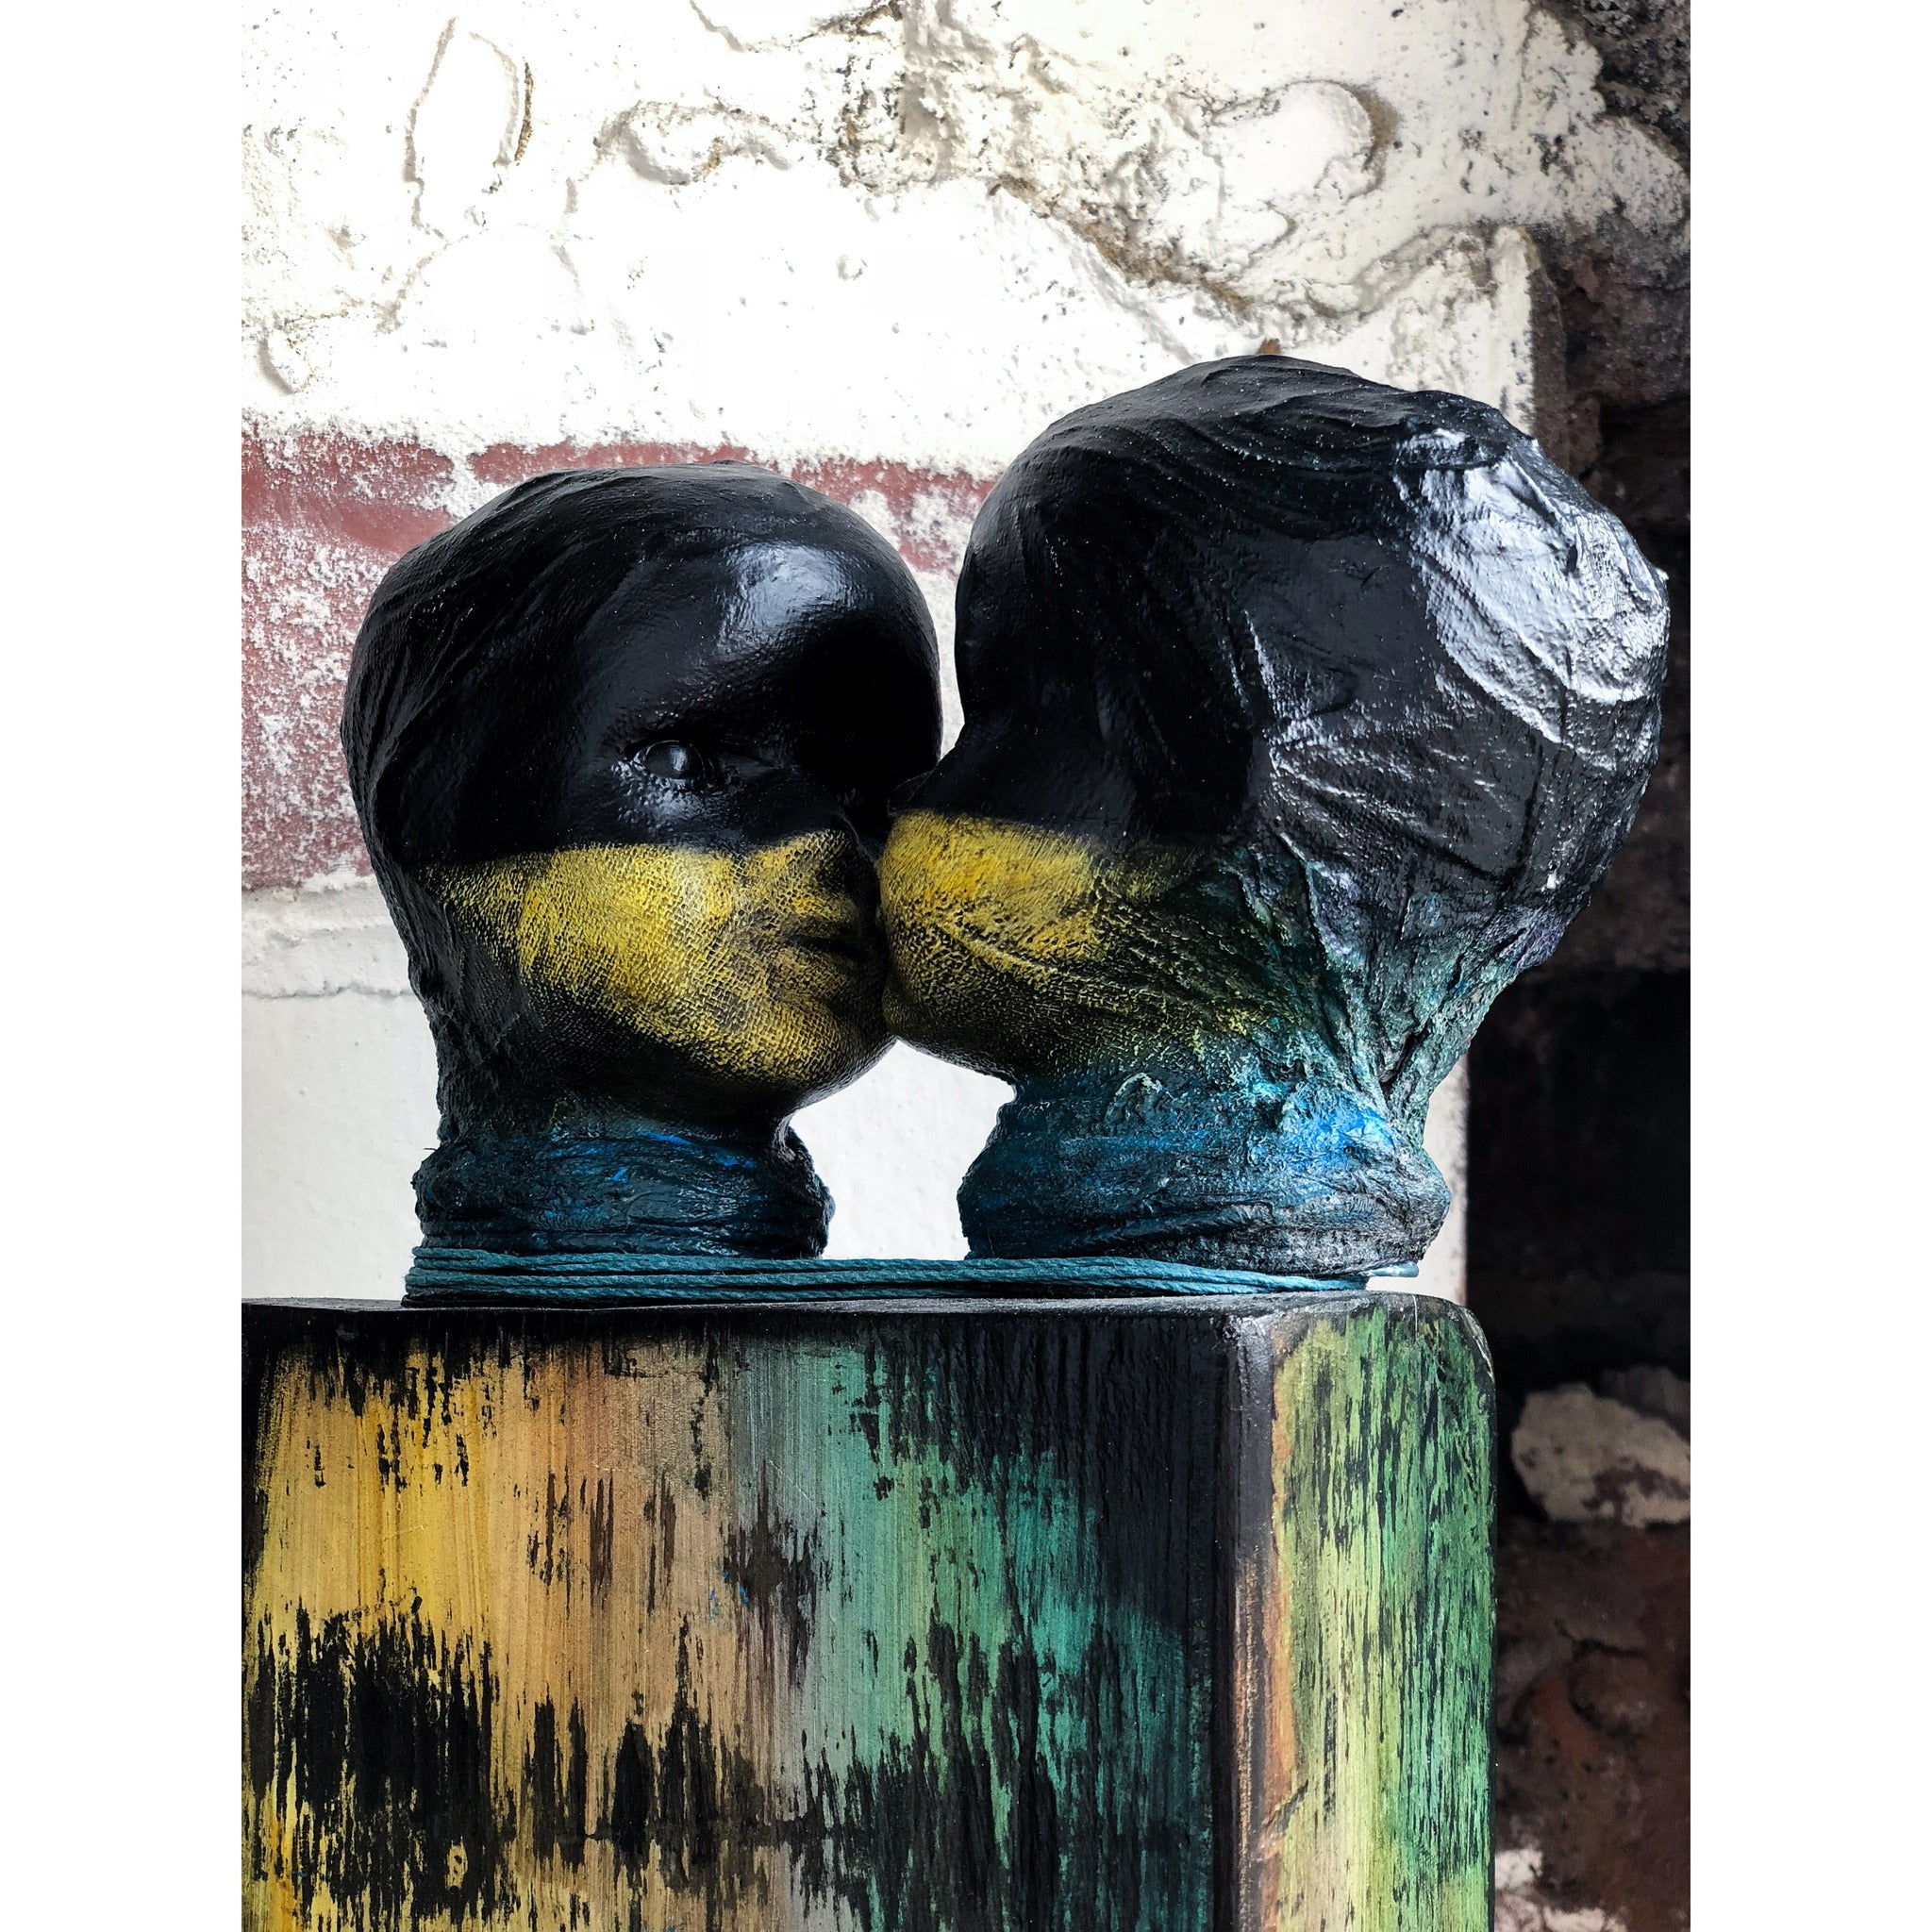 One Love: Original scultpure by Sonia Dalga - Egoiste Gallery